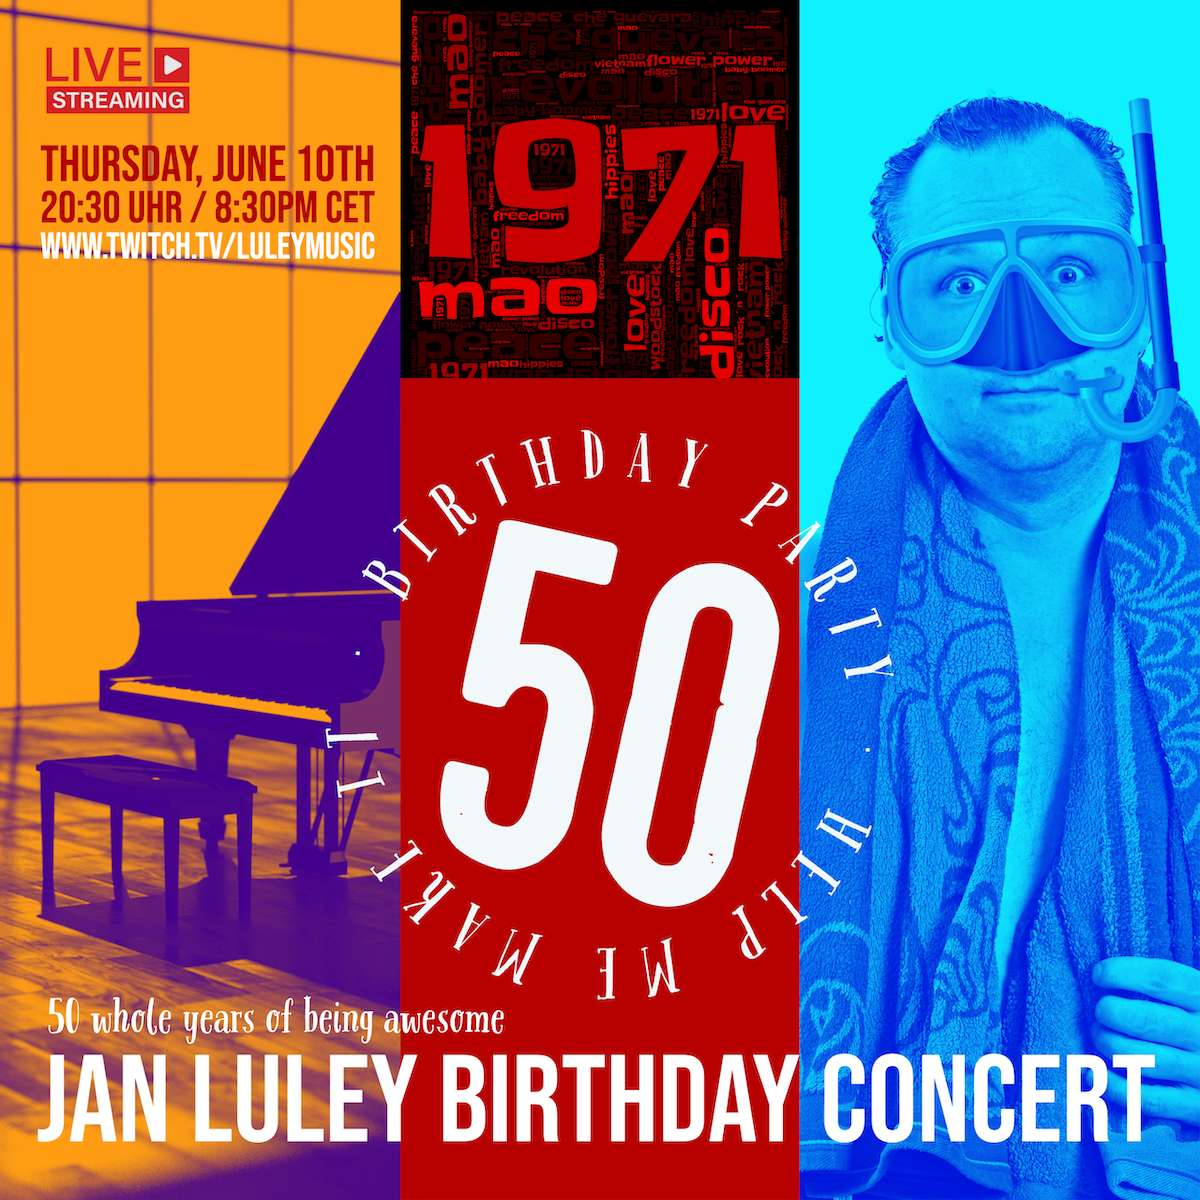 50 whole years of being awesome - the birthday concert